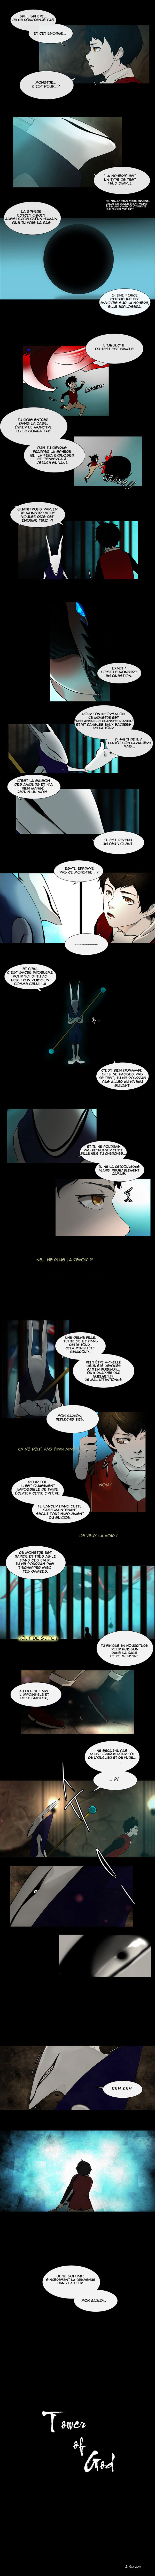 tower_of_god_ch01_5_fr